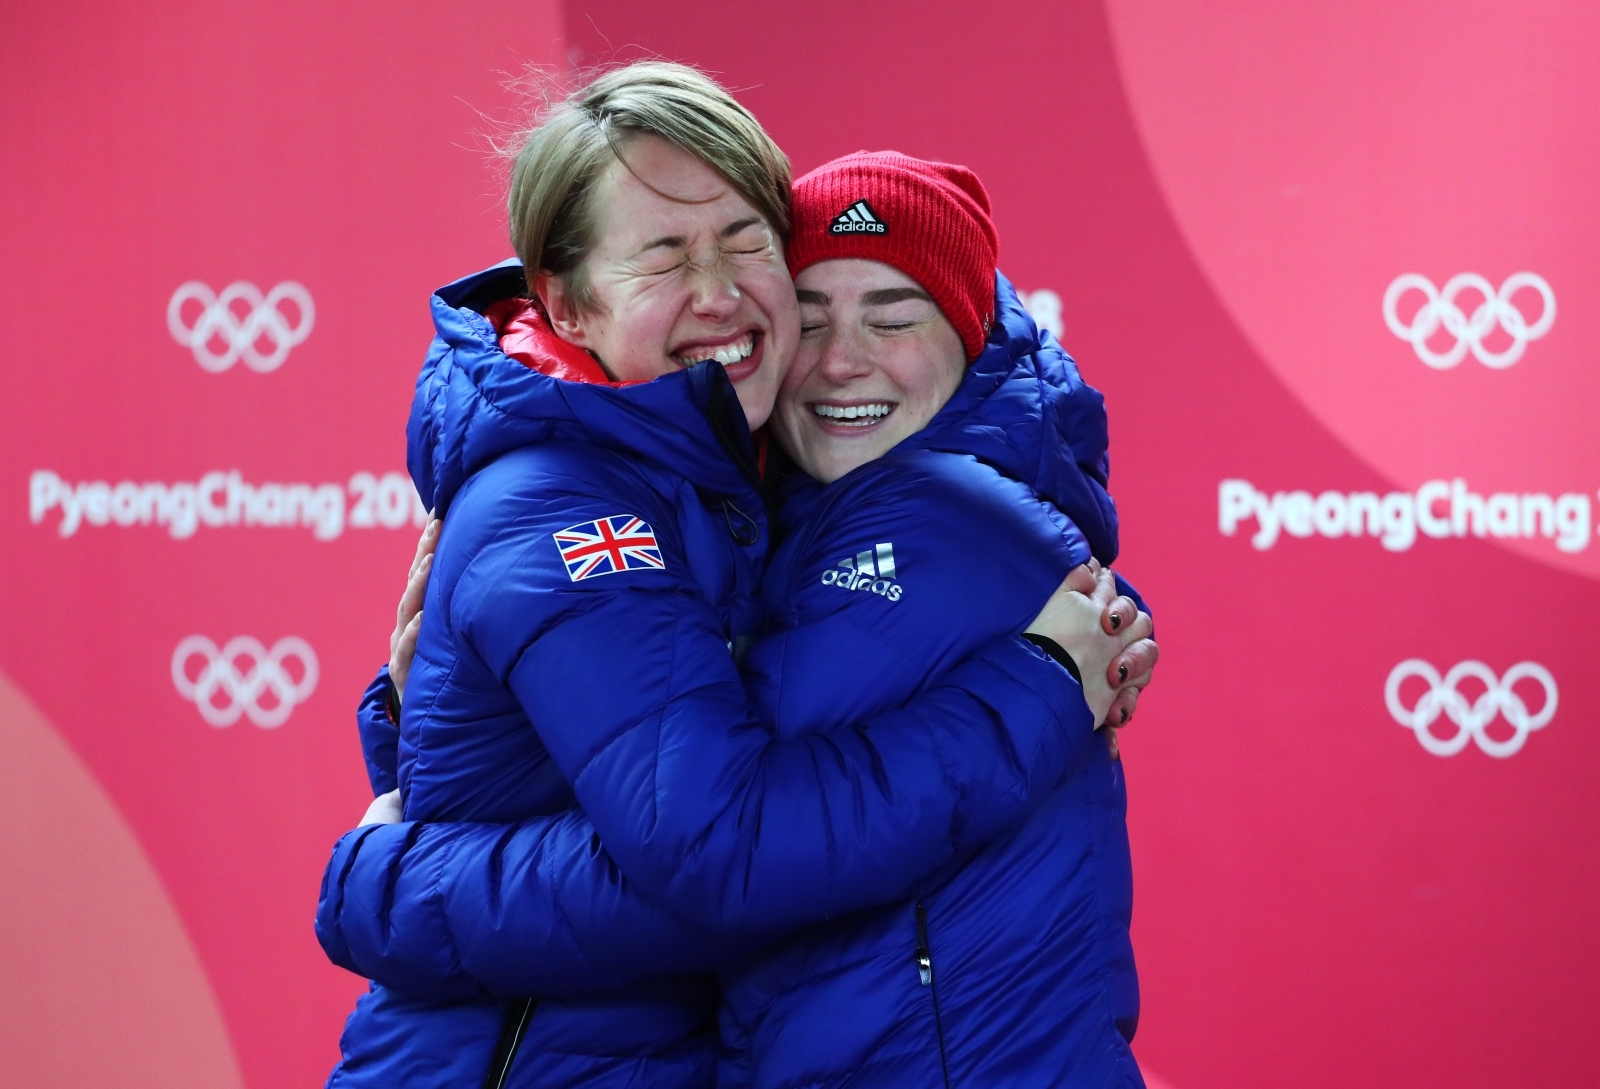 Lizzy Yarnold claims gold medal and retains Skeleton title at Winter Olympics